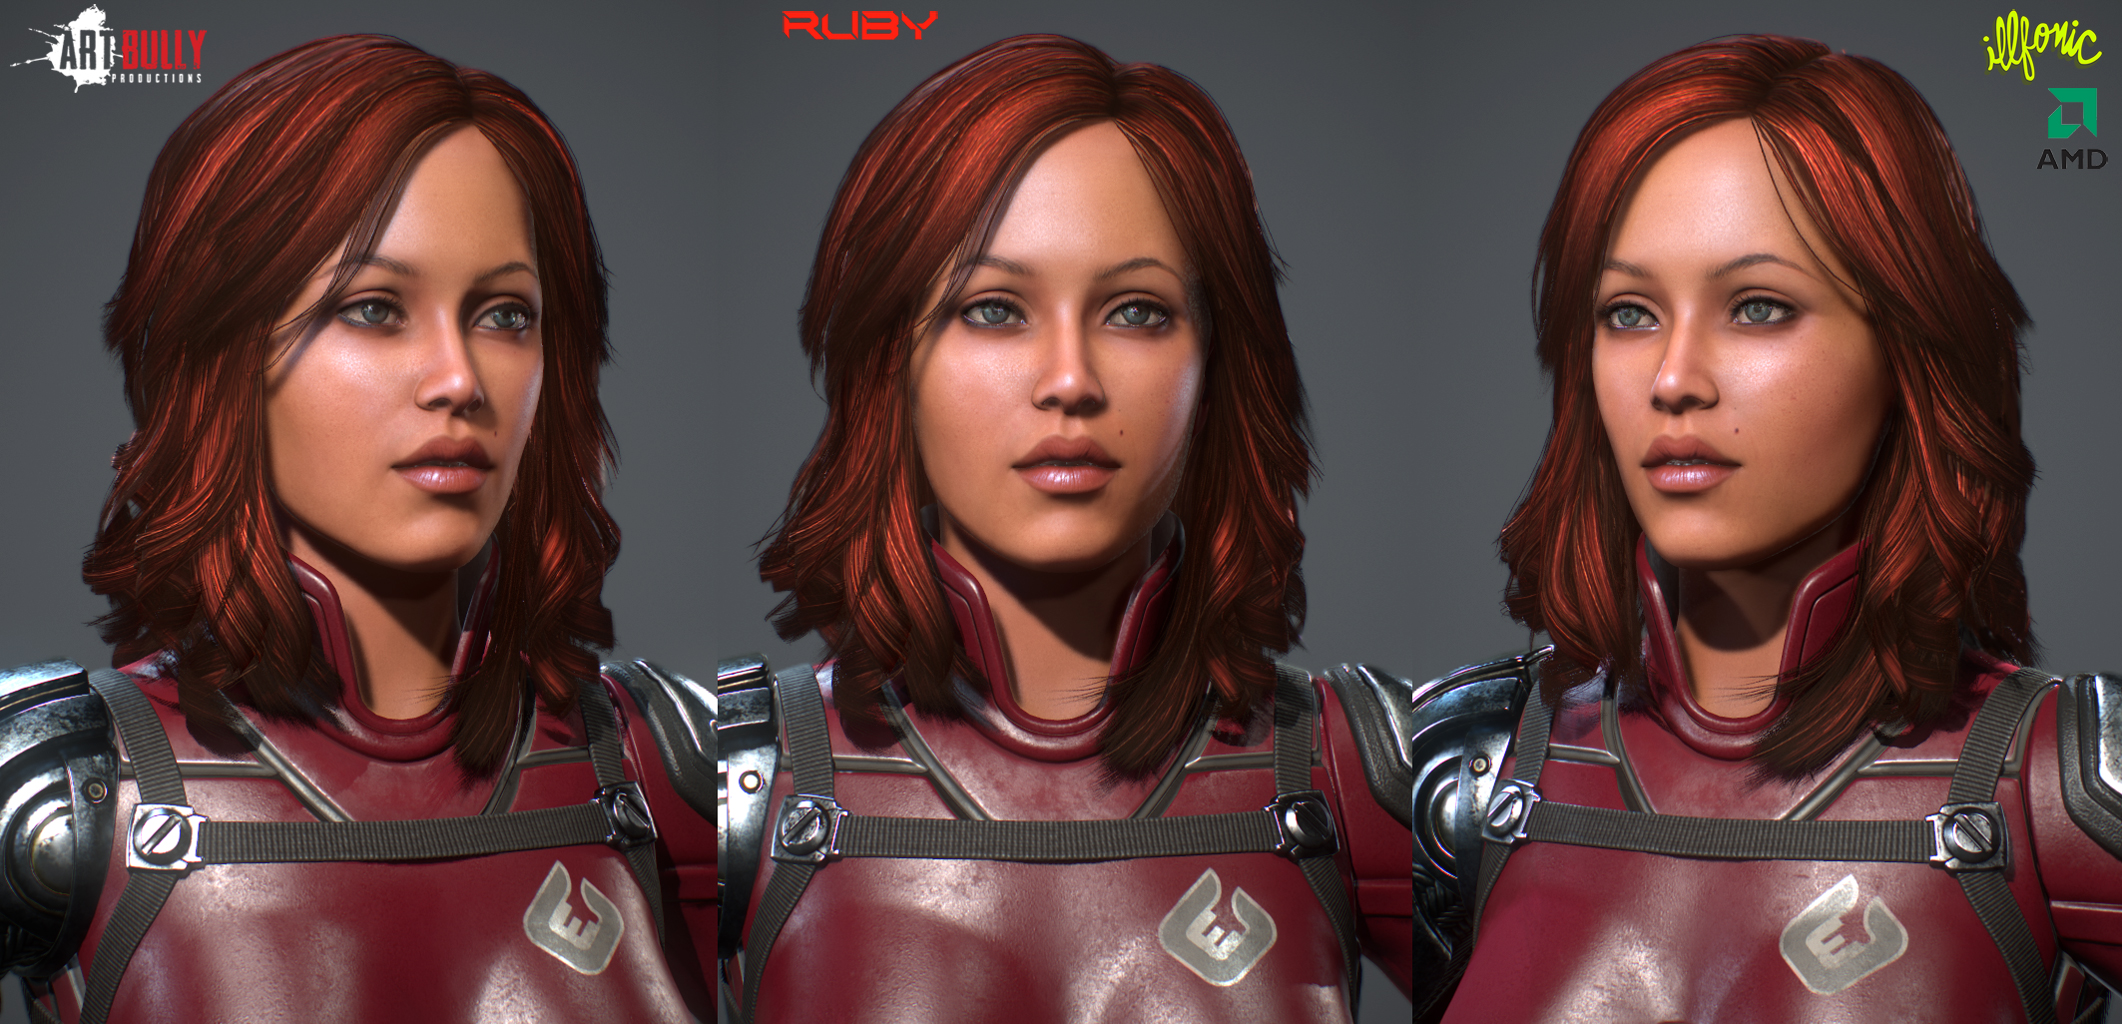 Ruby_Portrait_Render_01.jpg